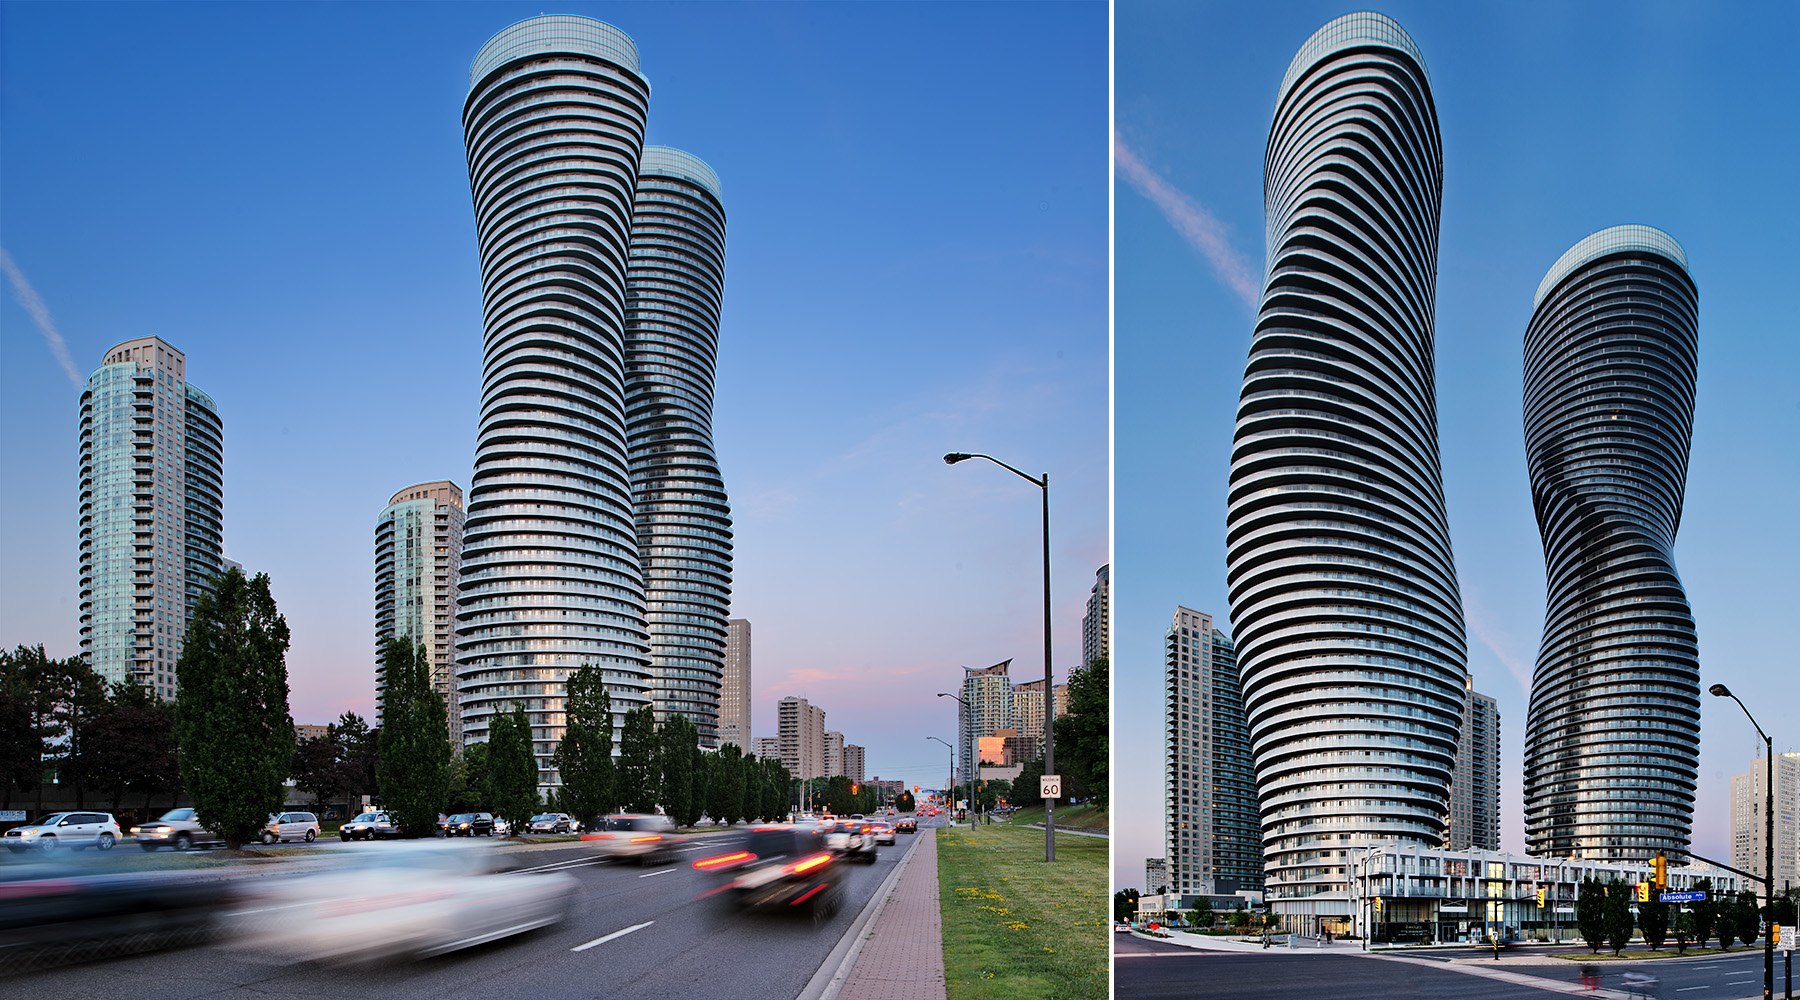 architecture-photography-toronto-absolute-towers-mississauga-05